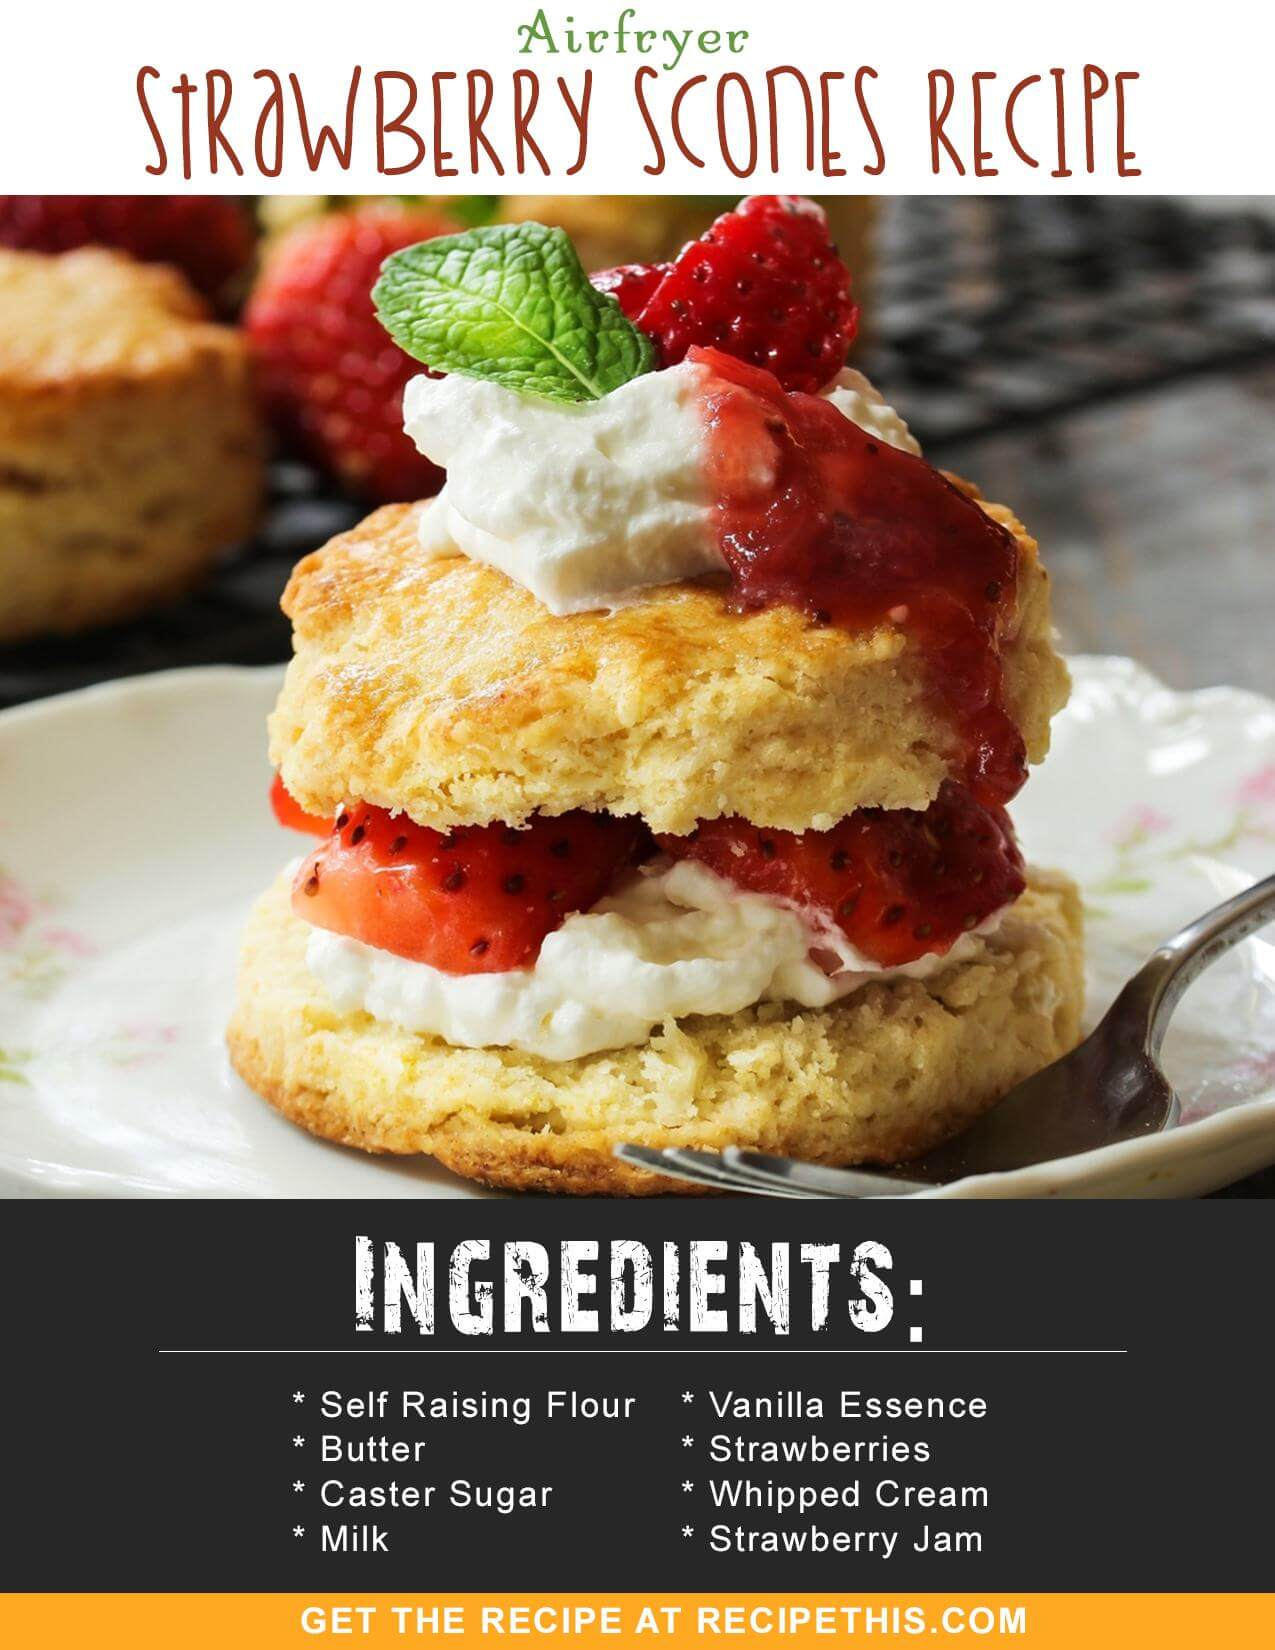 Airfryer Recipes | Airfryer Strawberry Scones Recipe from RecipeThis.com